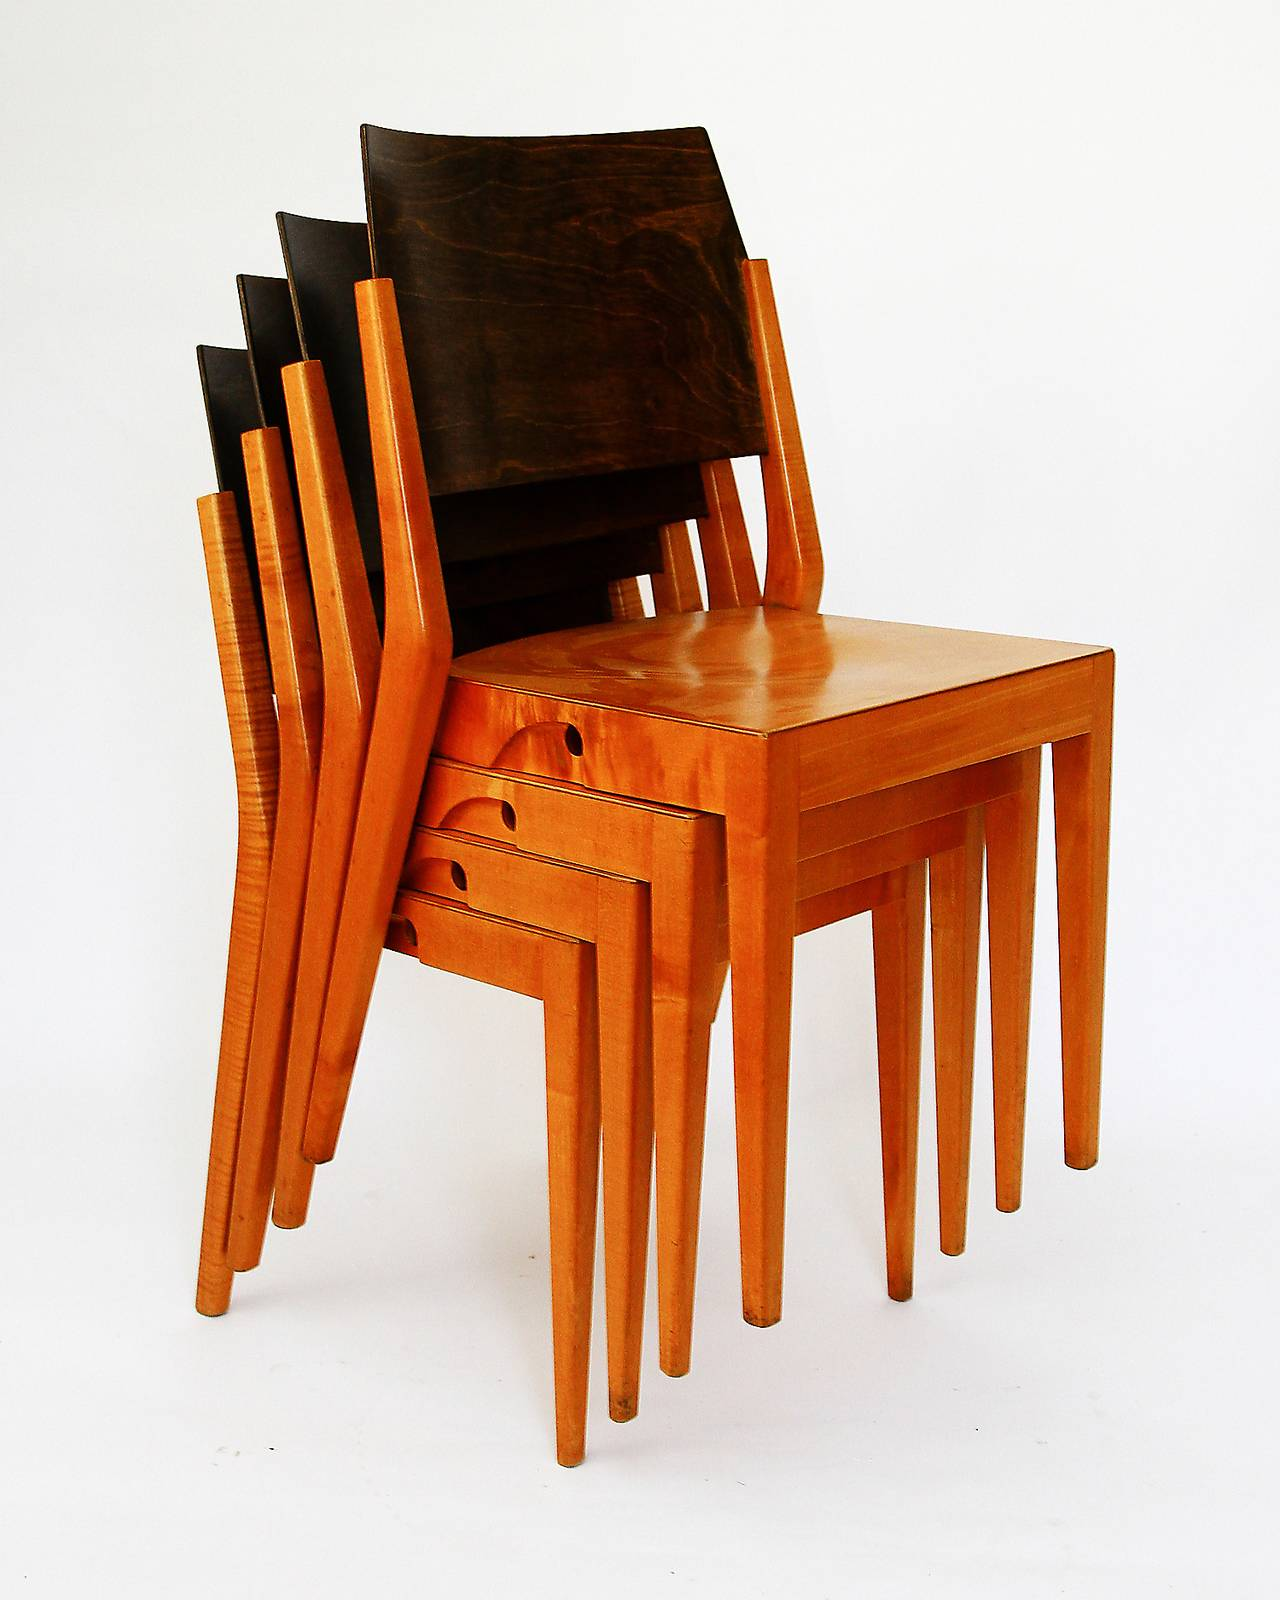 Four Important Austrian Stacking Chairs by Karl Schwanzer 1950s